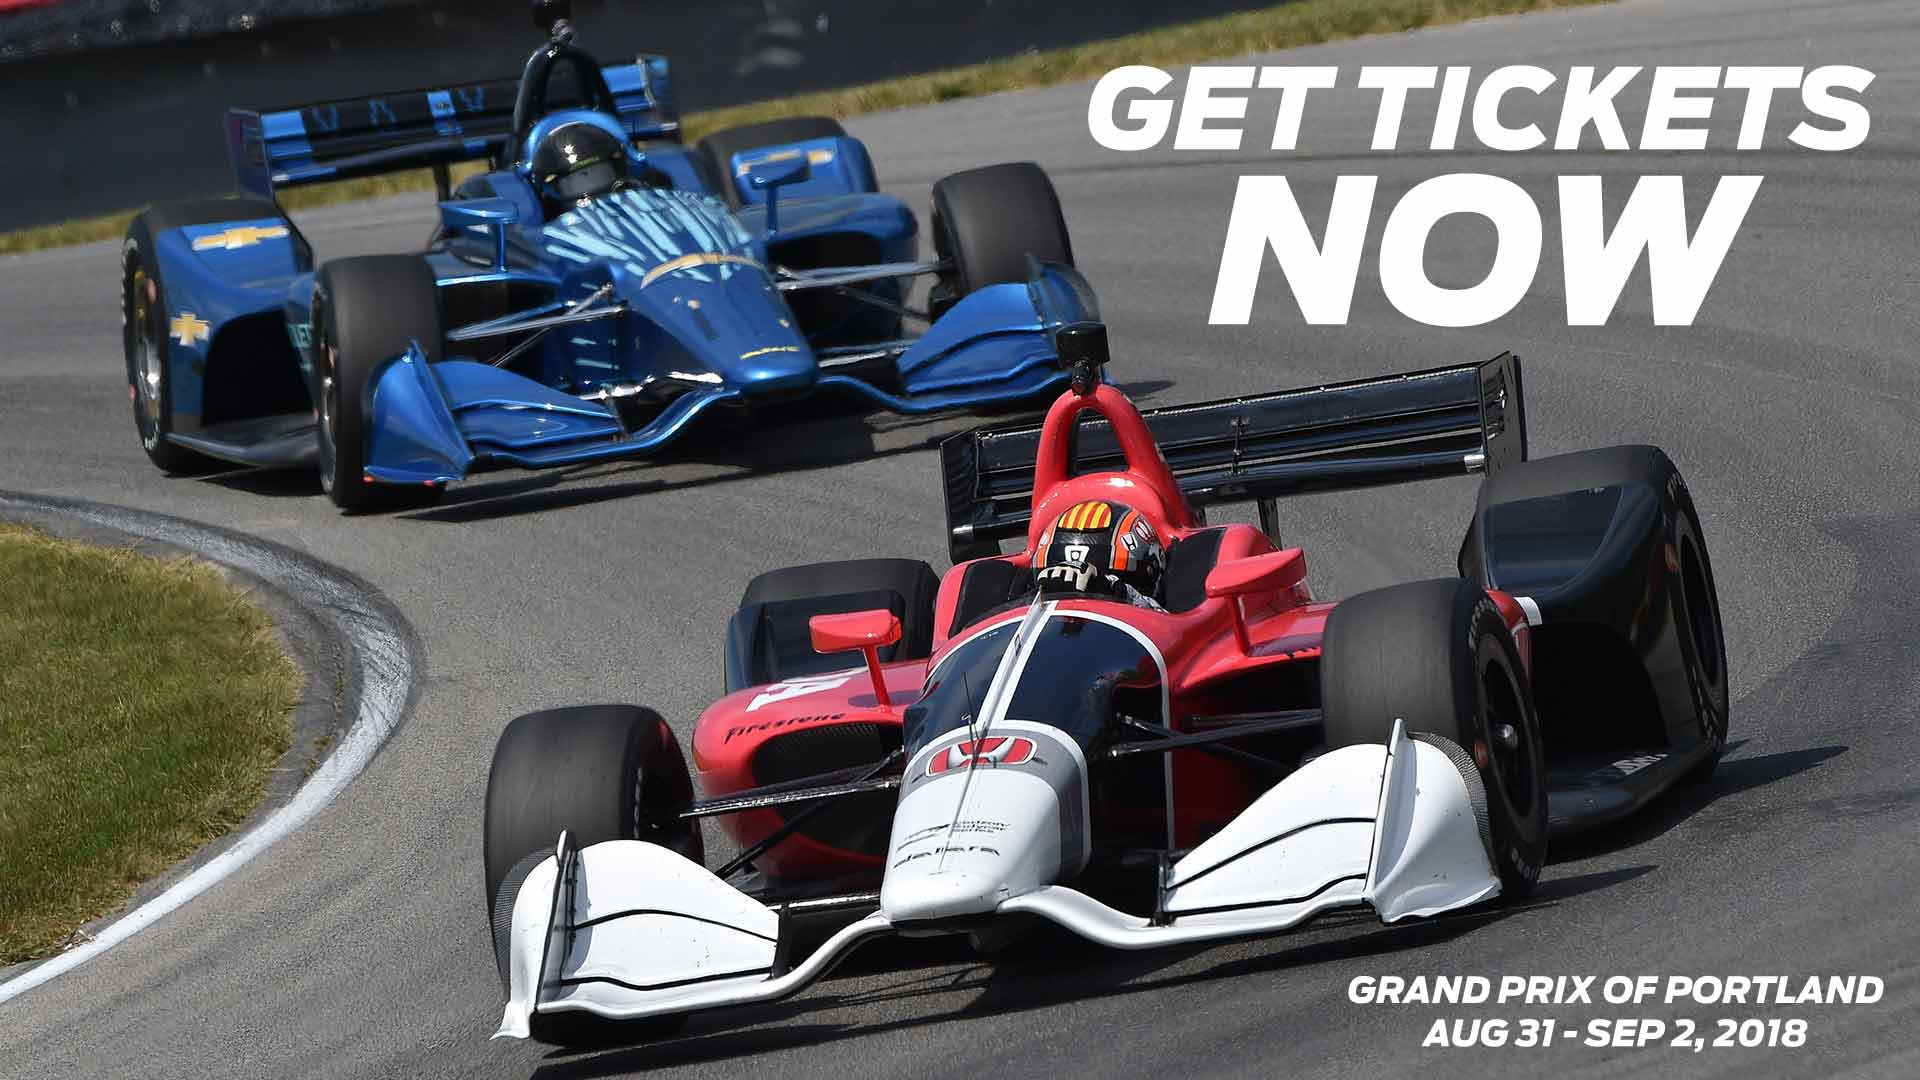 Tickets now on sale for 2018 Grand Prix of Portland